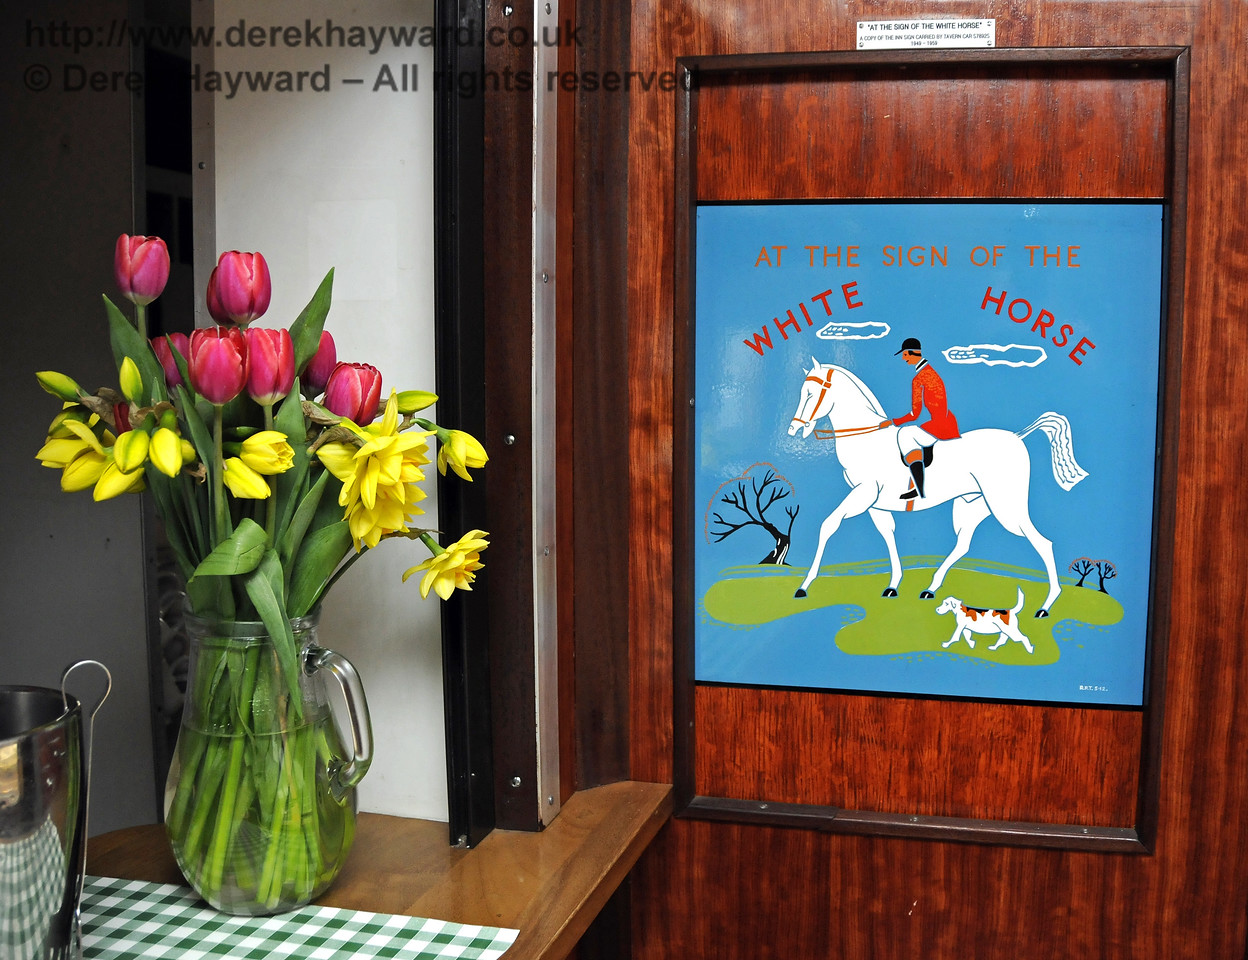 """Inside the Wealden Rambler Restaurant Car, which carries the name """"At the Sign of the White Horse"""".  30.03.2014  10121"""